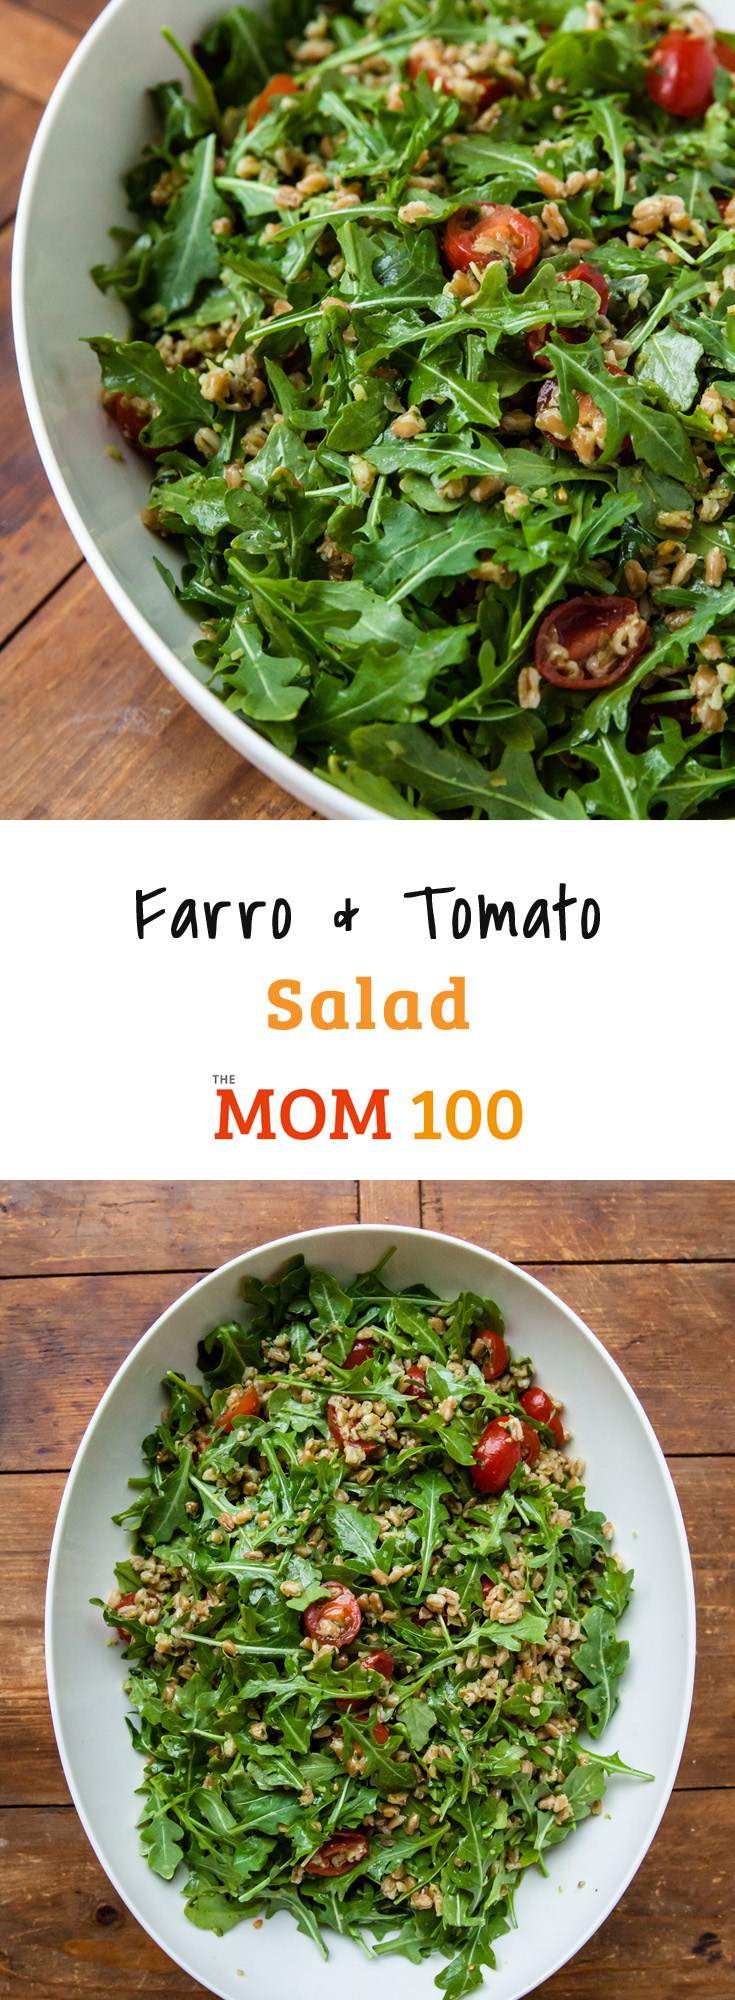 Farro and Tomato Salad: Farro is a hearty whole grain that can become a staple in your kitchen, appearing in everything from soup to casseroles to warm sides to salads like this.